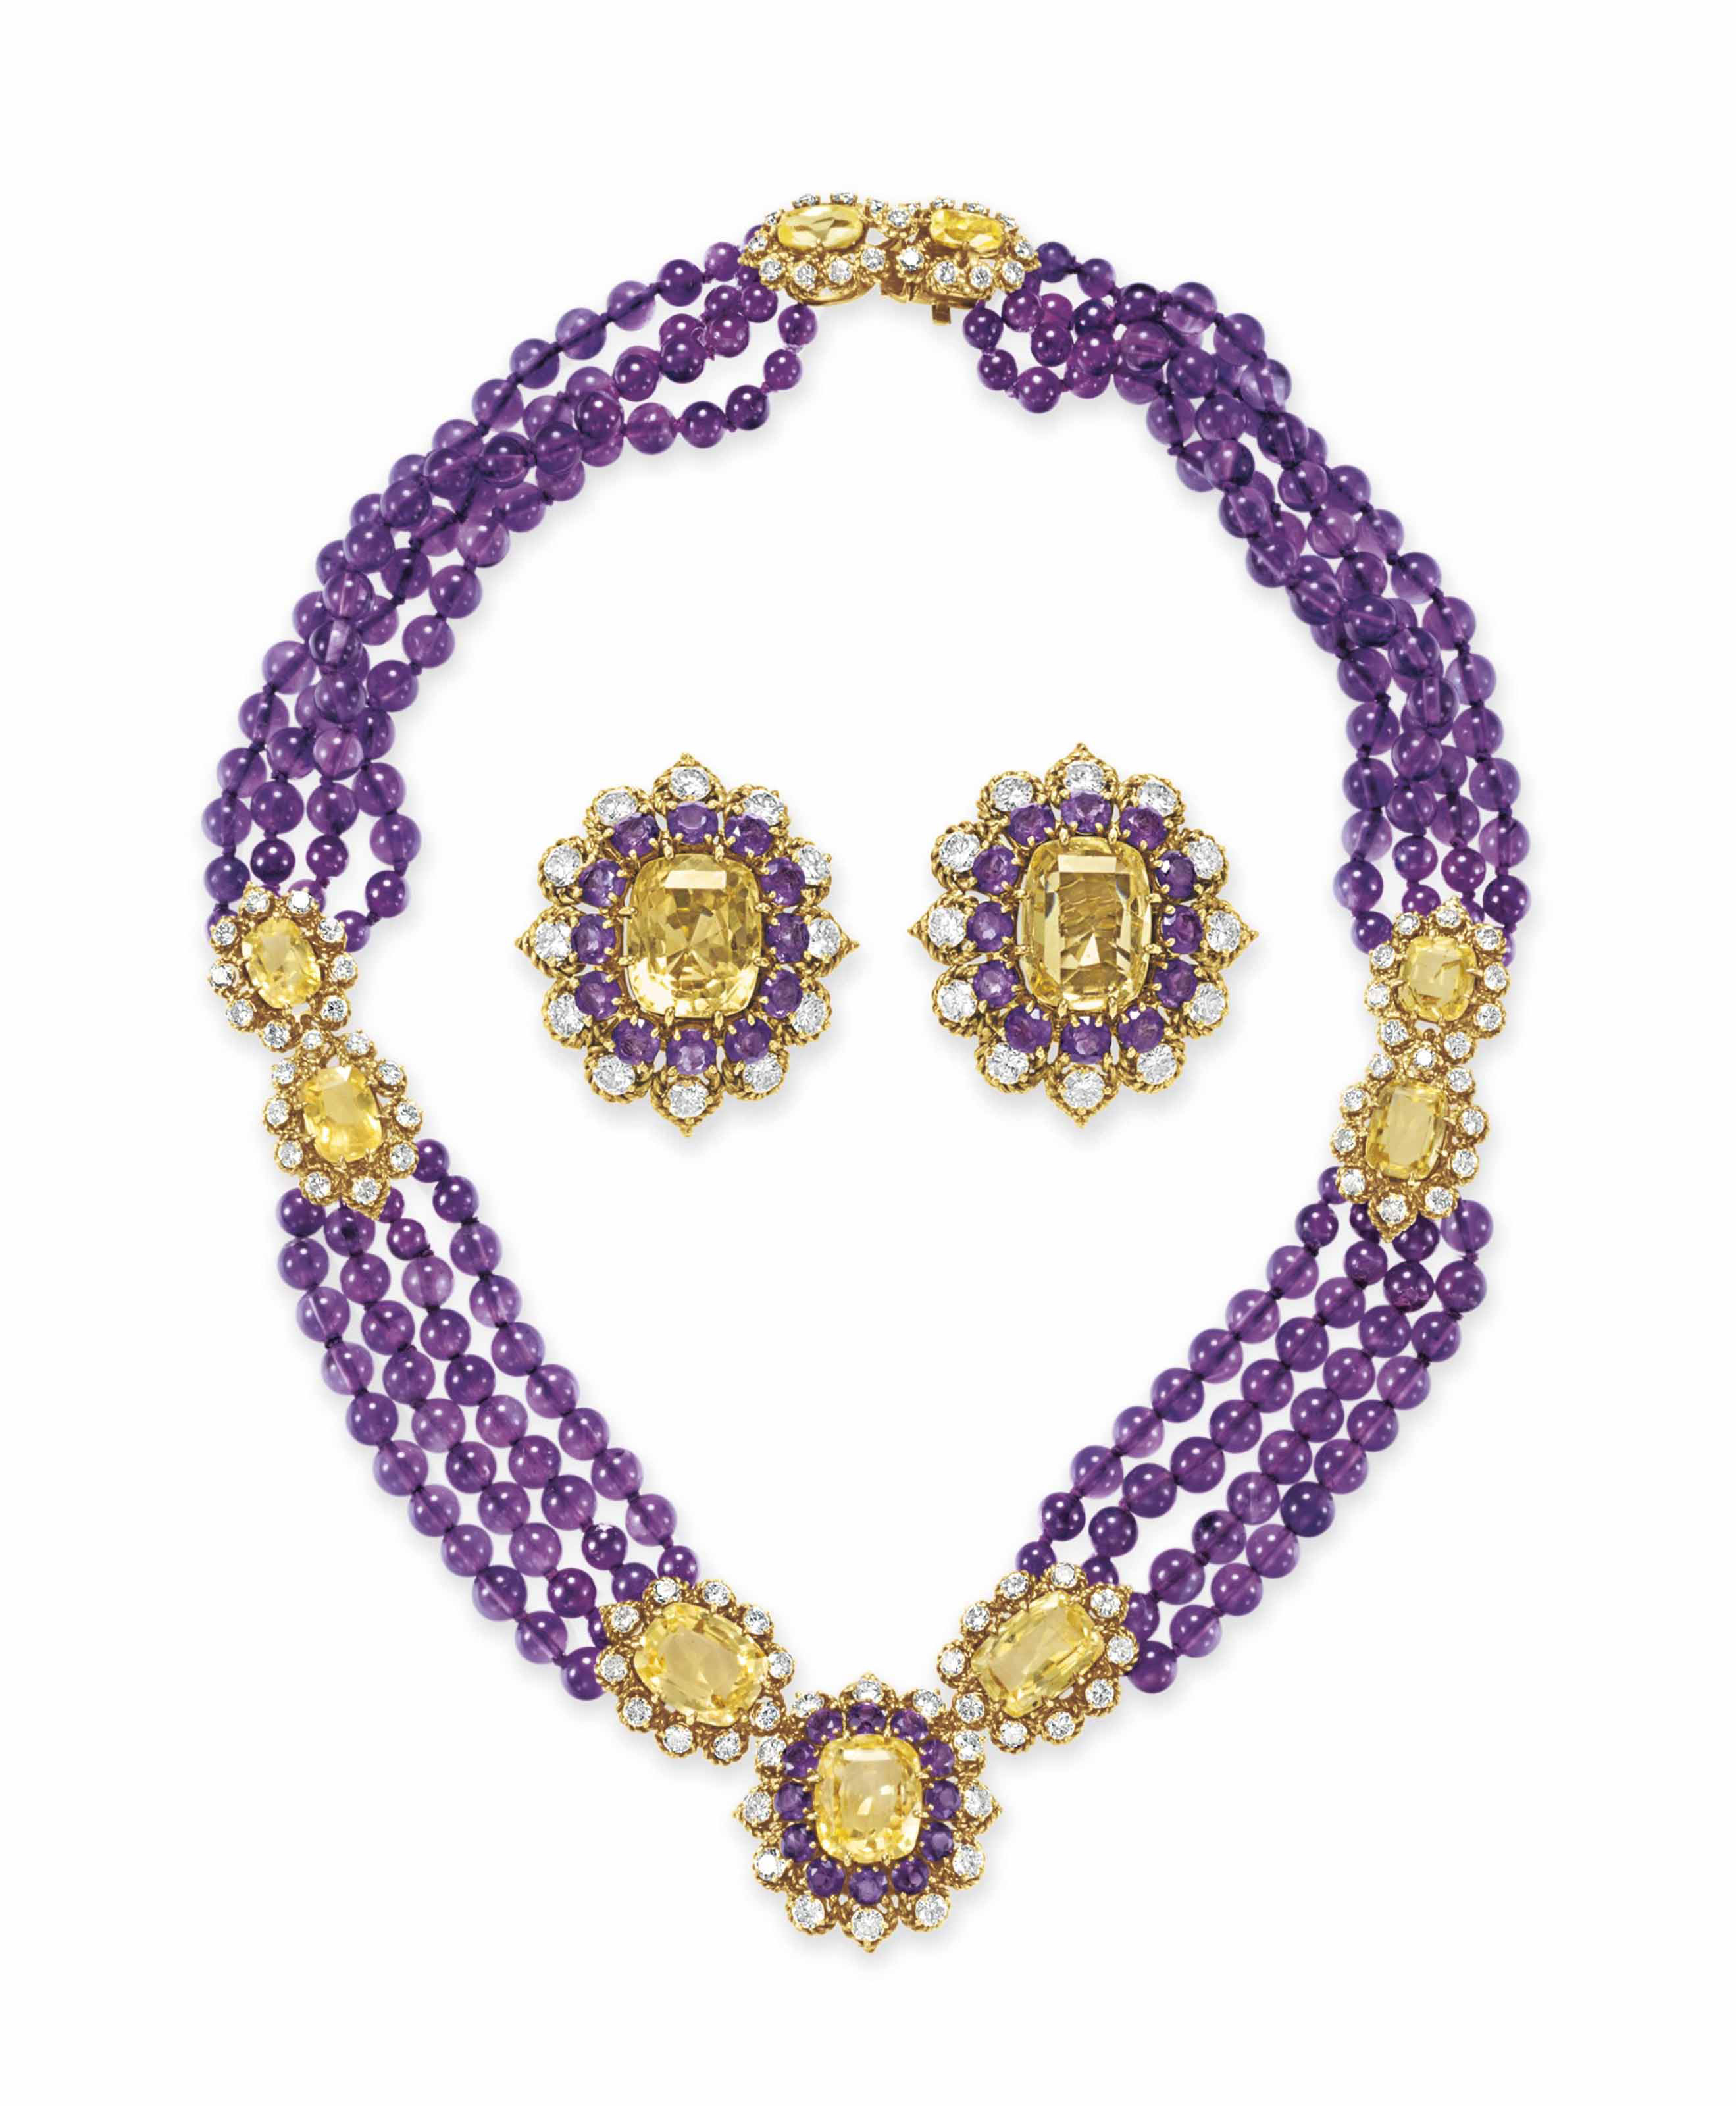 A SET OF AMETHYST, YELLOW SAPP